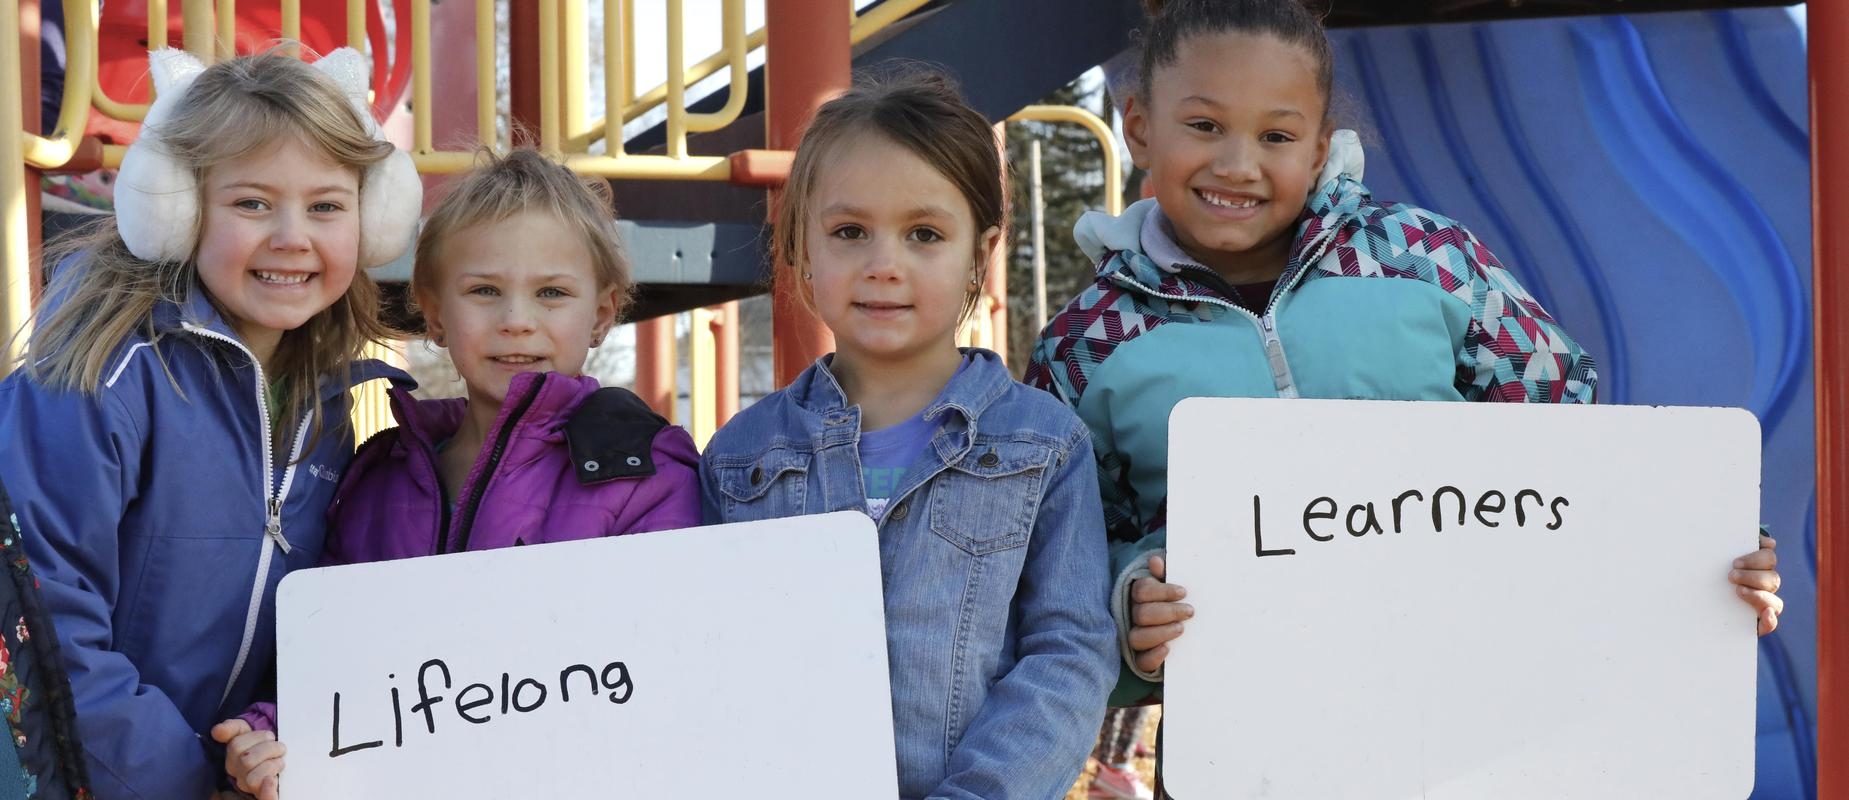 4 girls holding sign that says lifelong learners outside